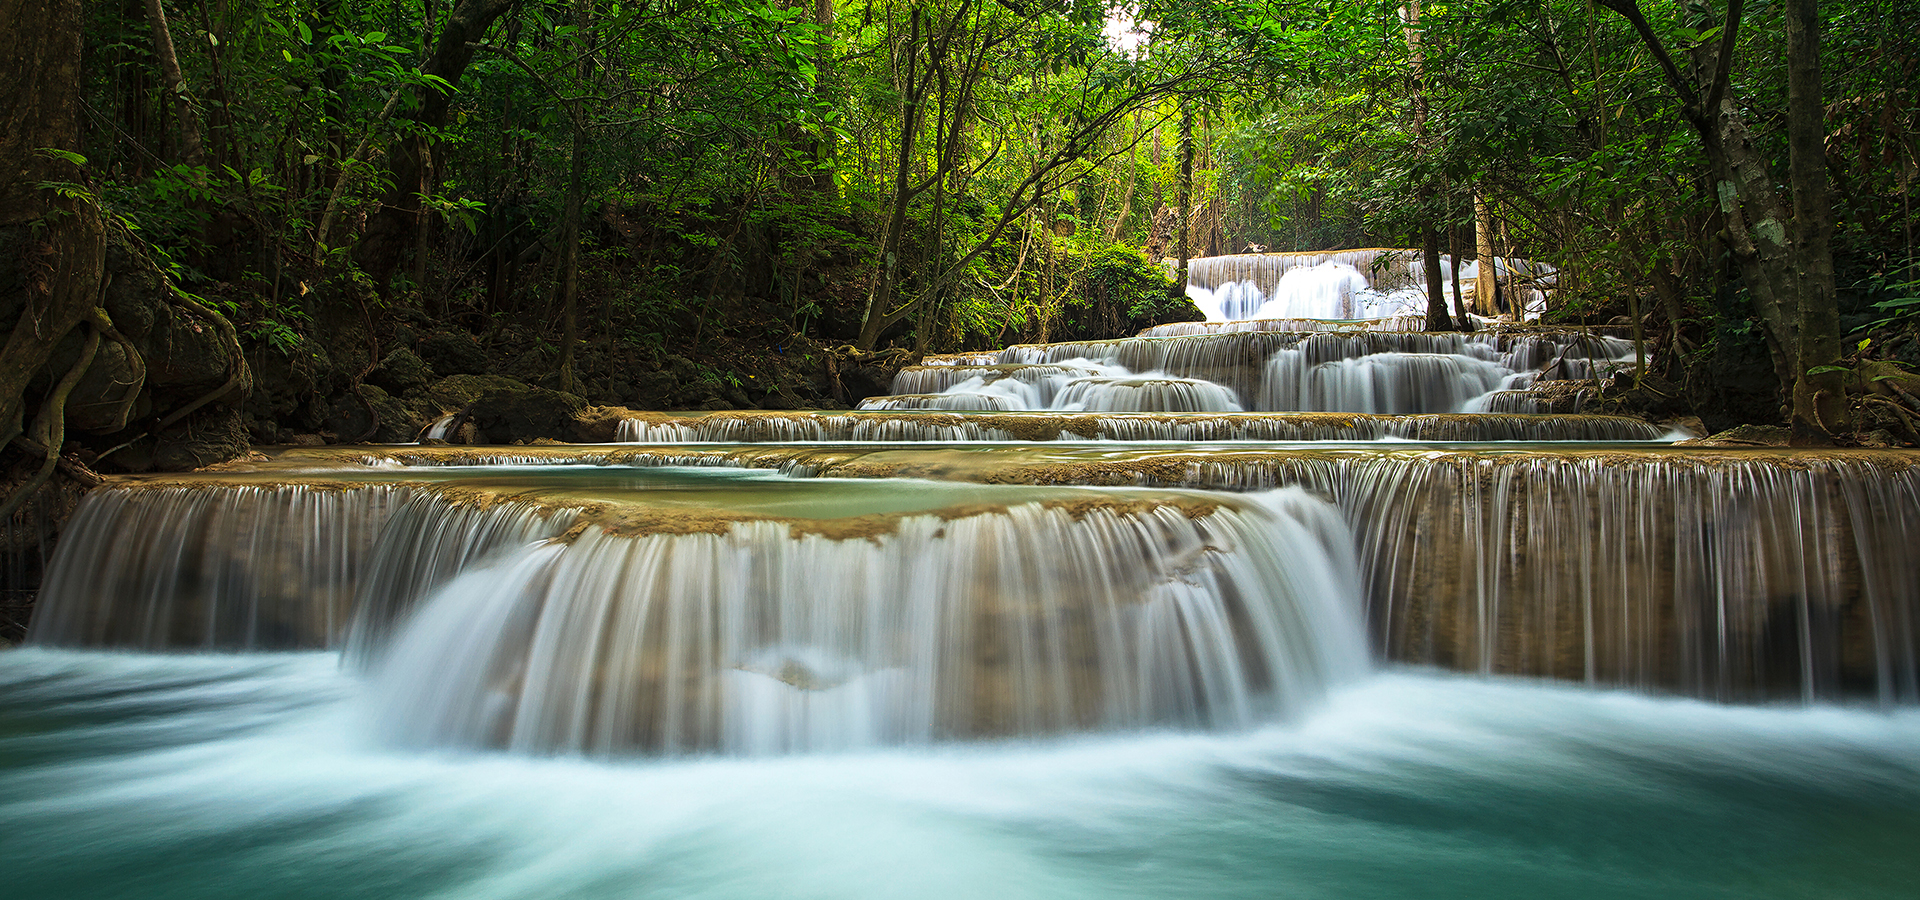 forest stream waterfall scenery background  forest  stream  waterfall background image for free